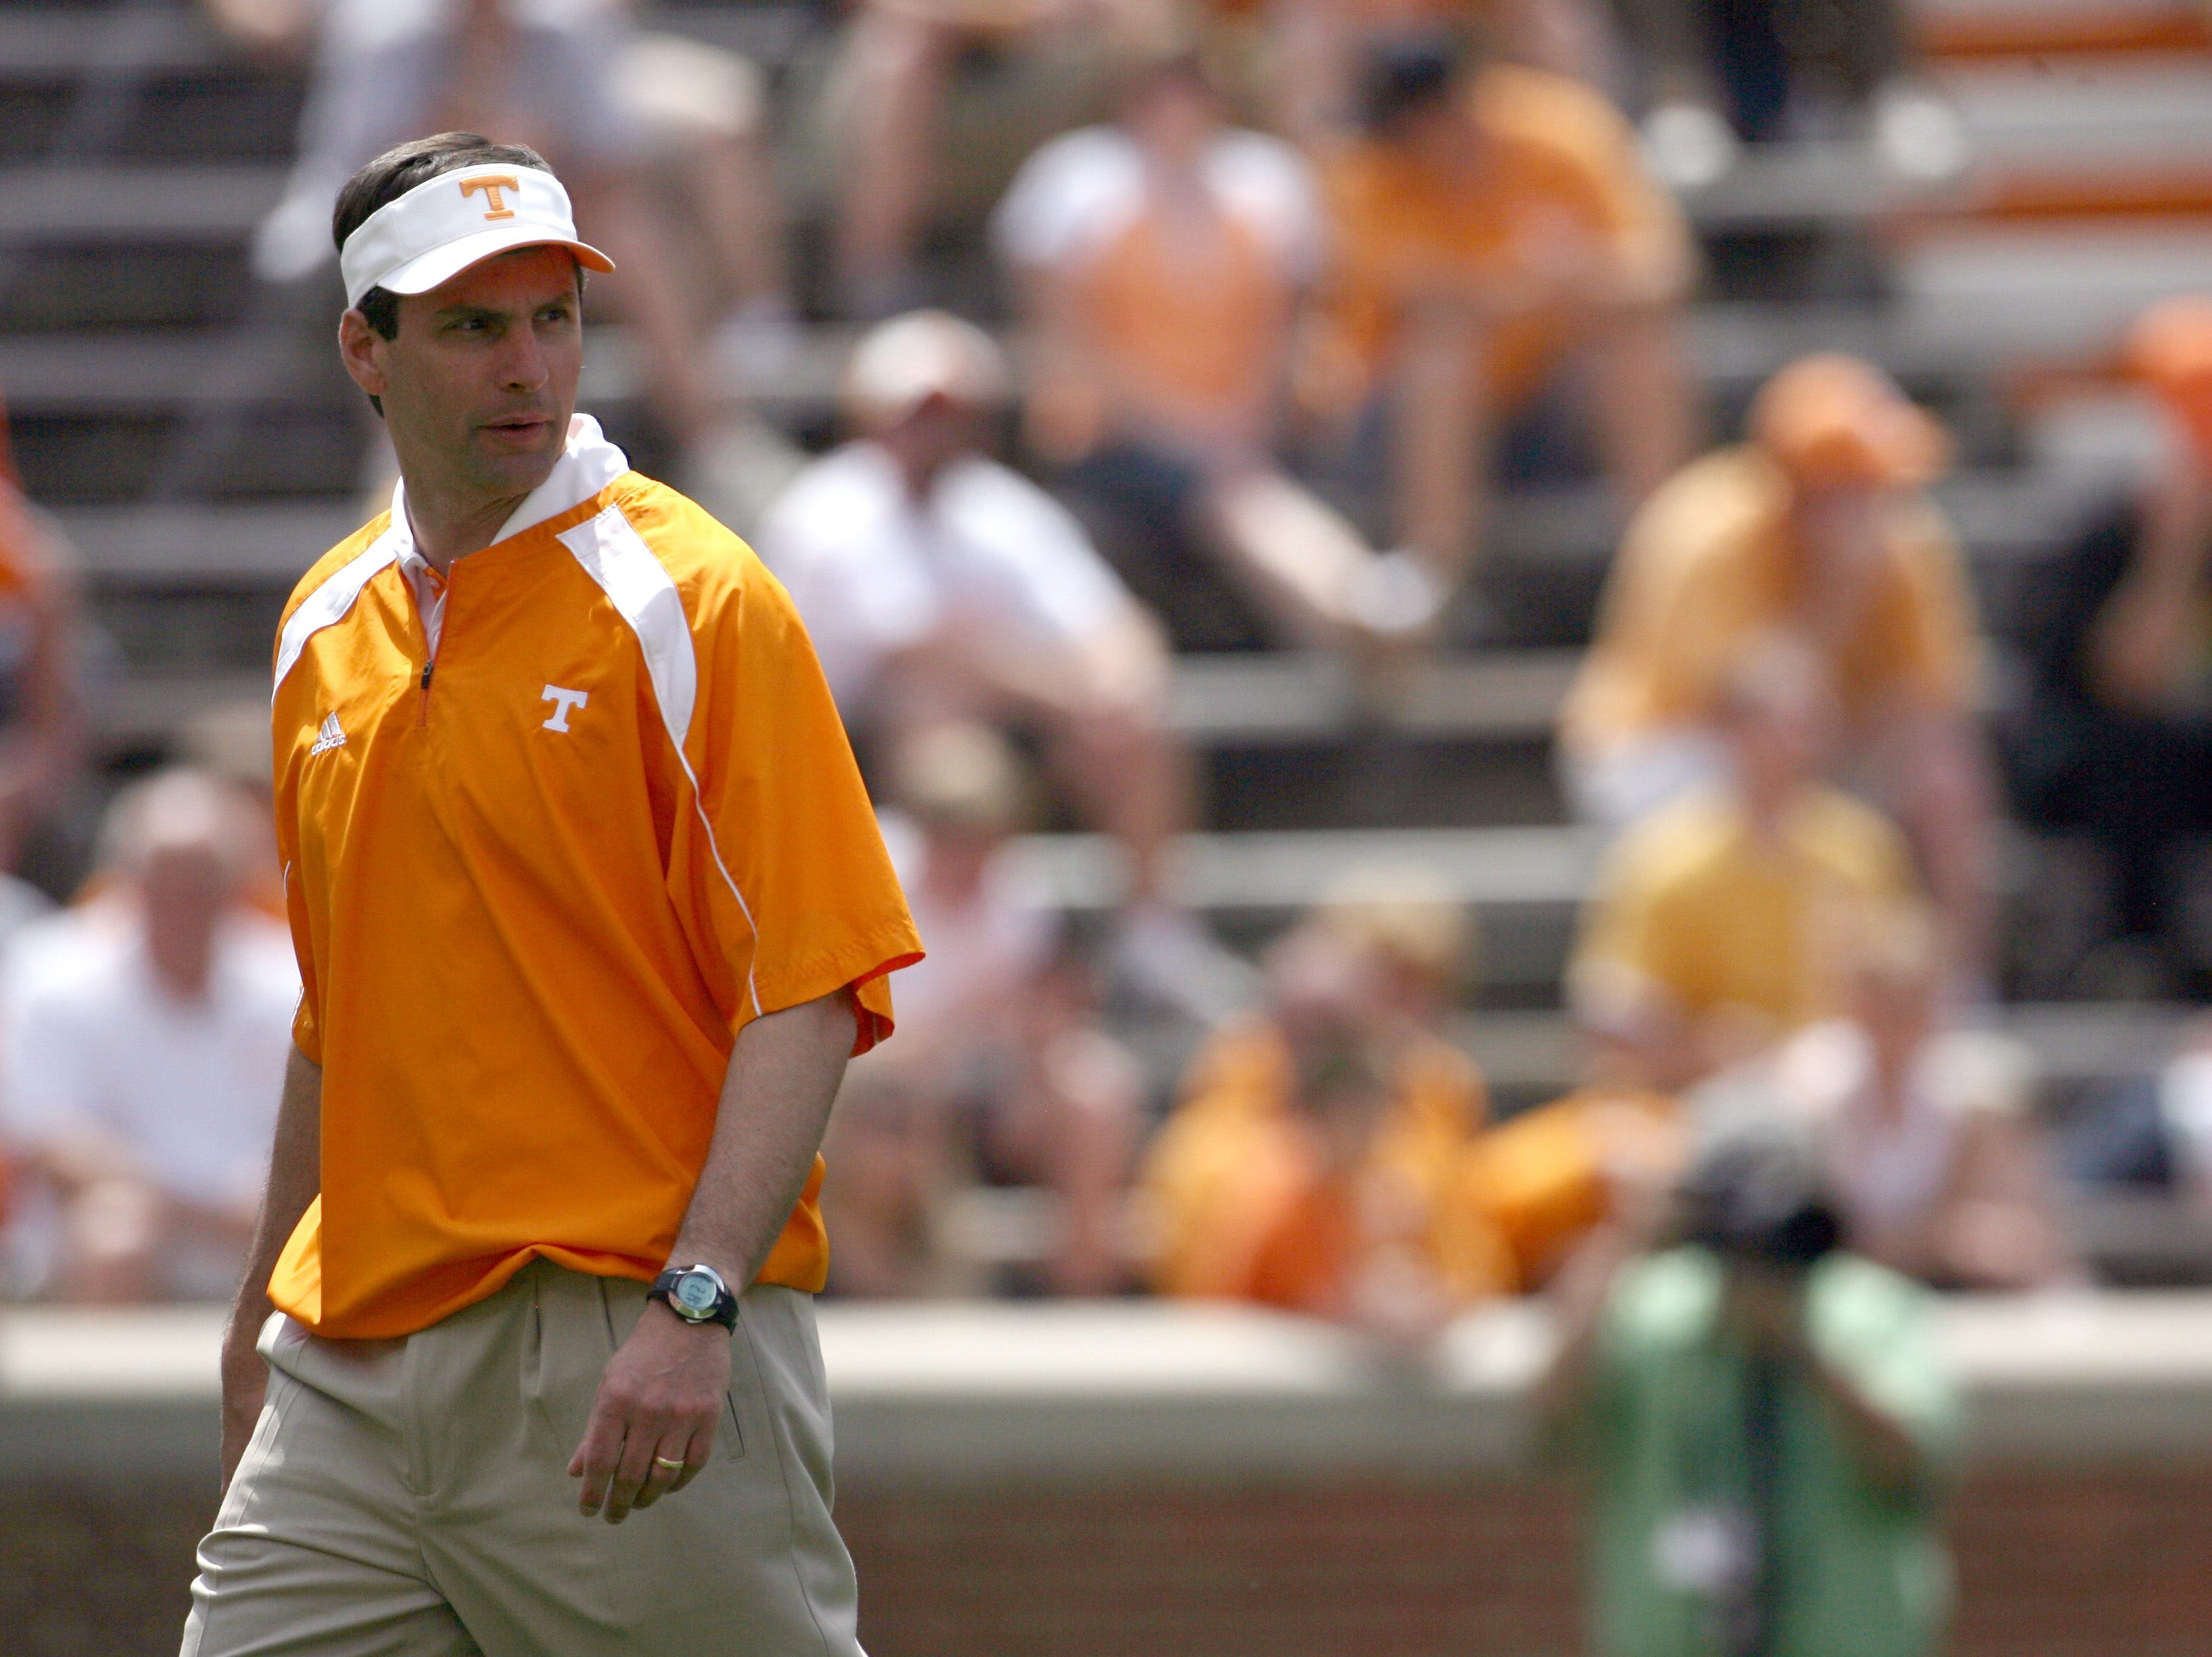 In this photo taken on Saturday, April 17, 2010, Tennessee head coach Derek Dooley watches the Vols play during the Orange and White spring college football game at Neyland Stadium in Knoxville, Tenn.